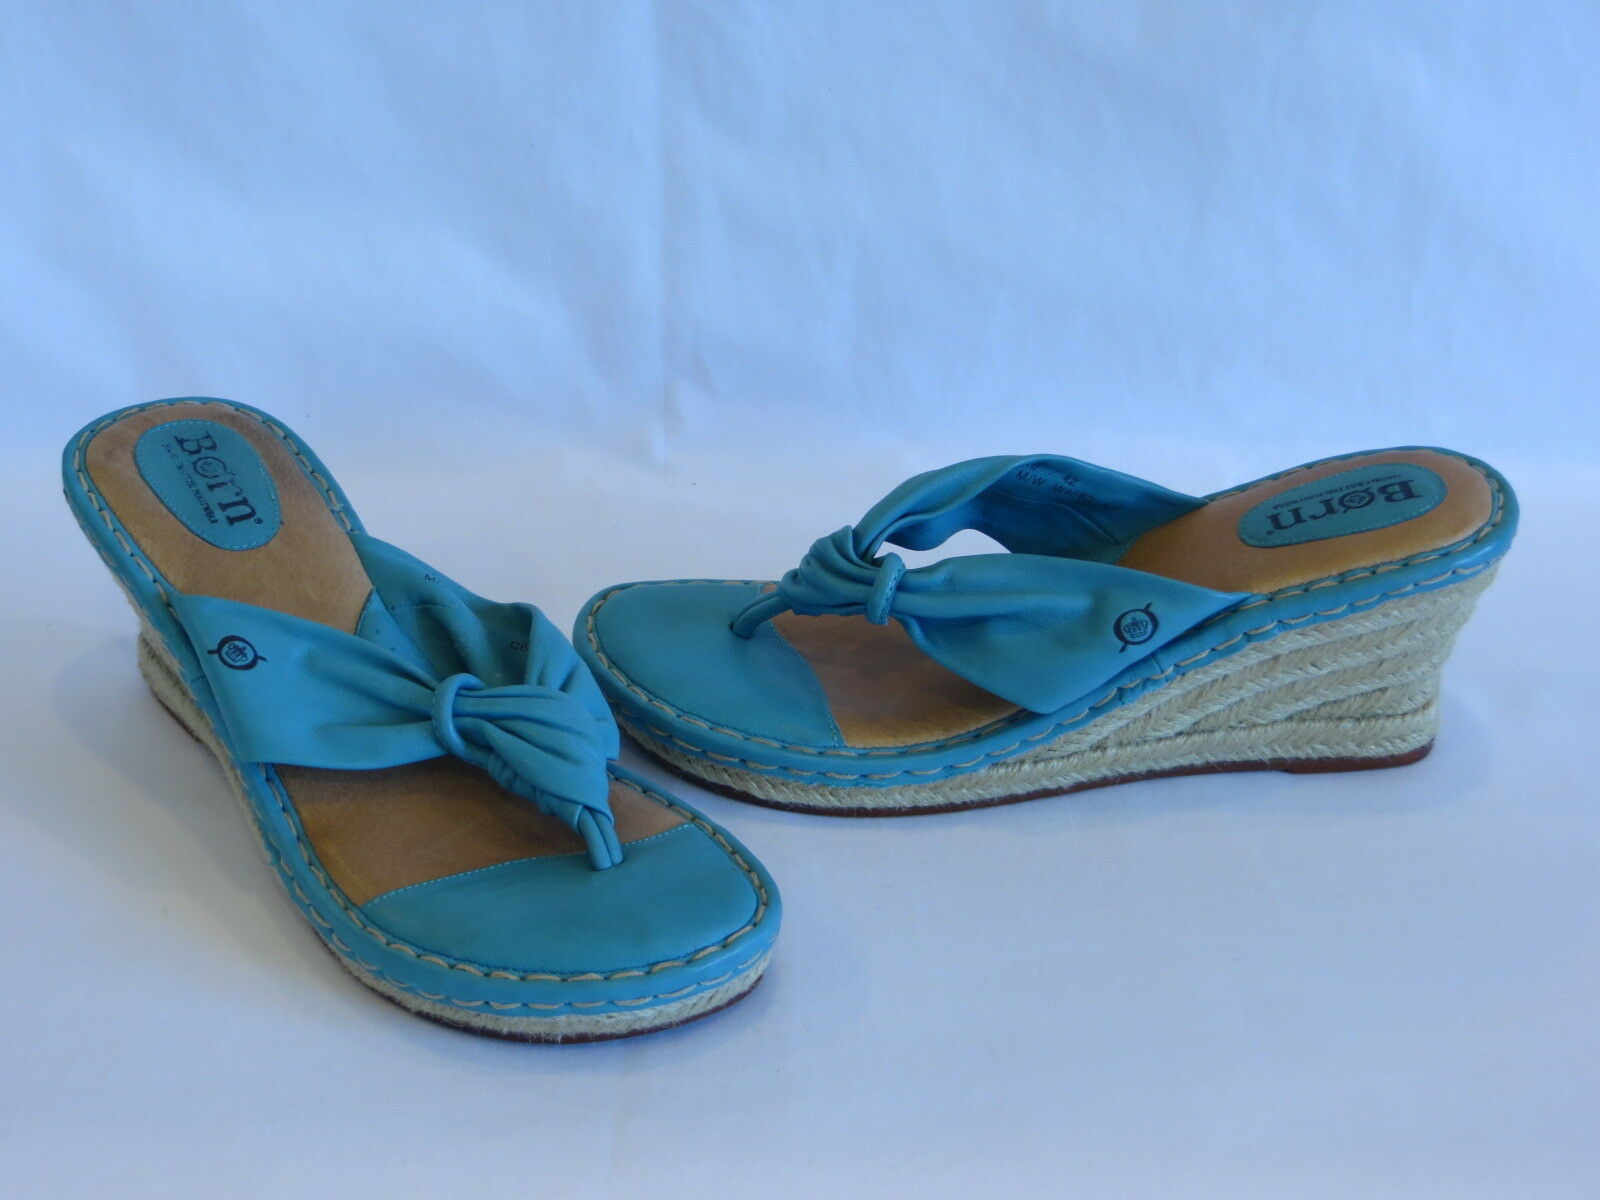 Born Turquoisen Smooth Leather & Jute Wedge Heels / Thongs / Sandals - 10M GR8!